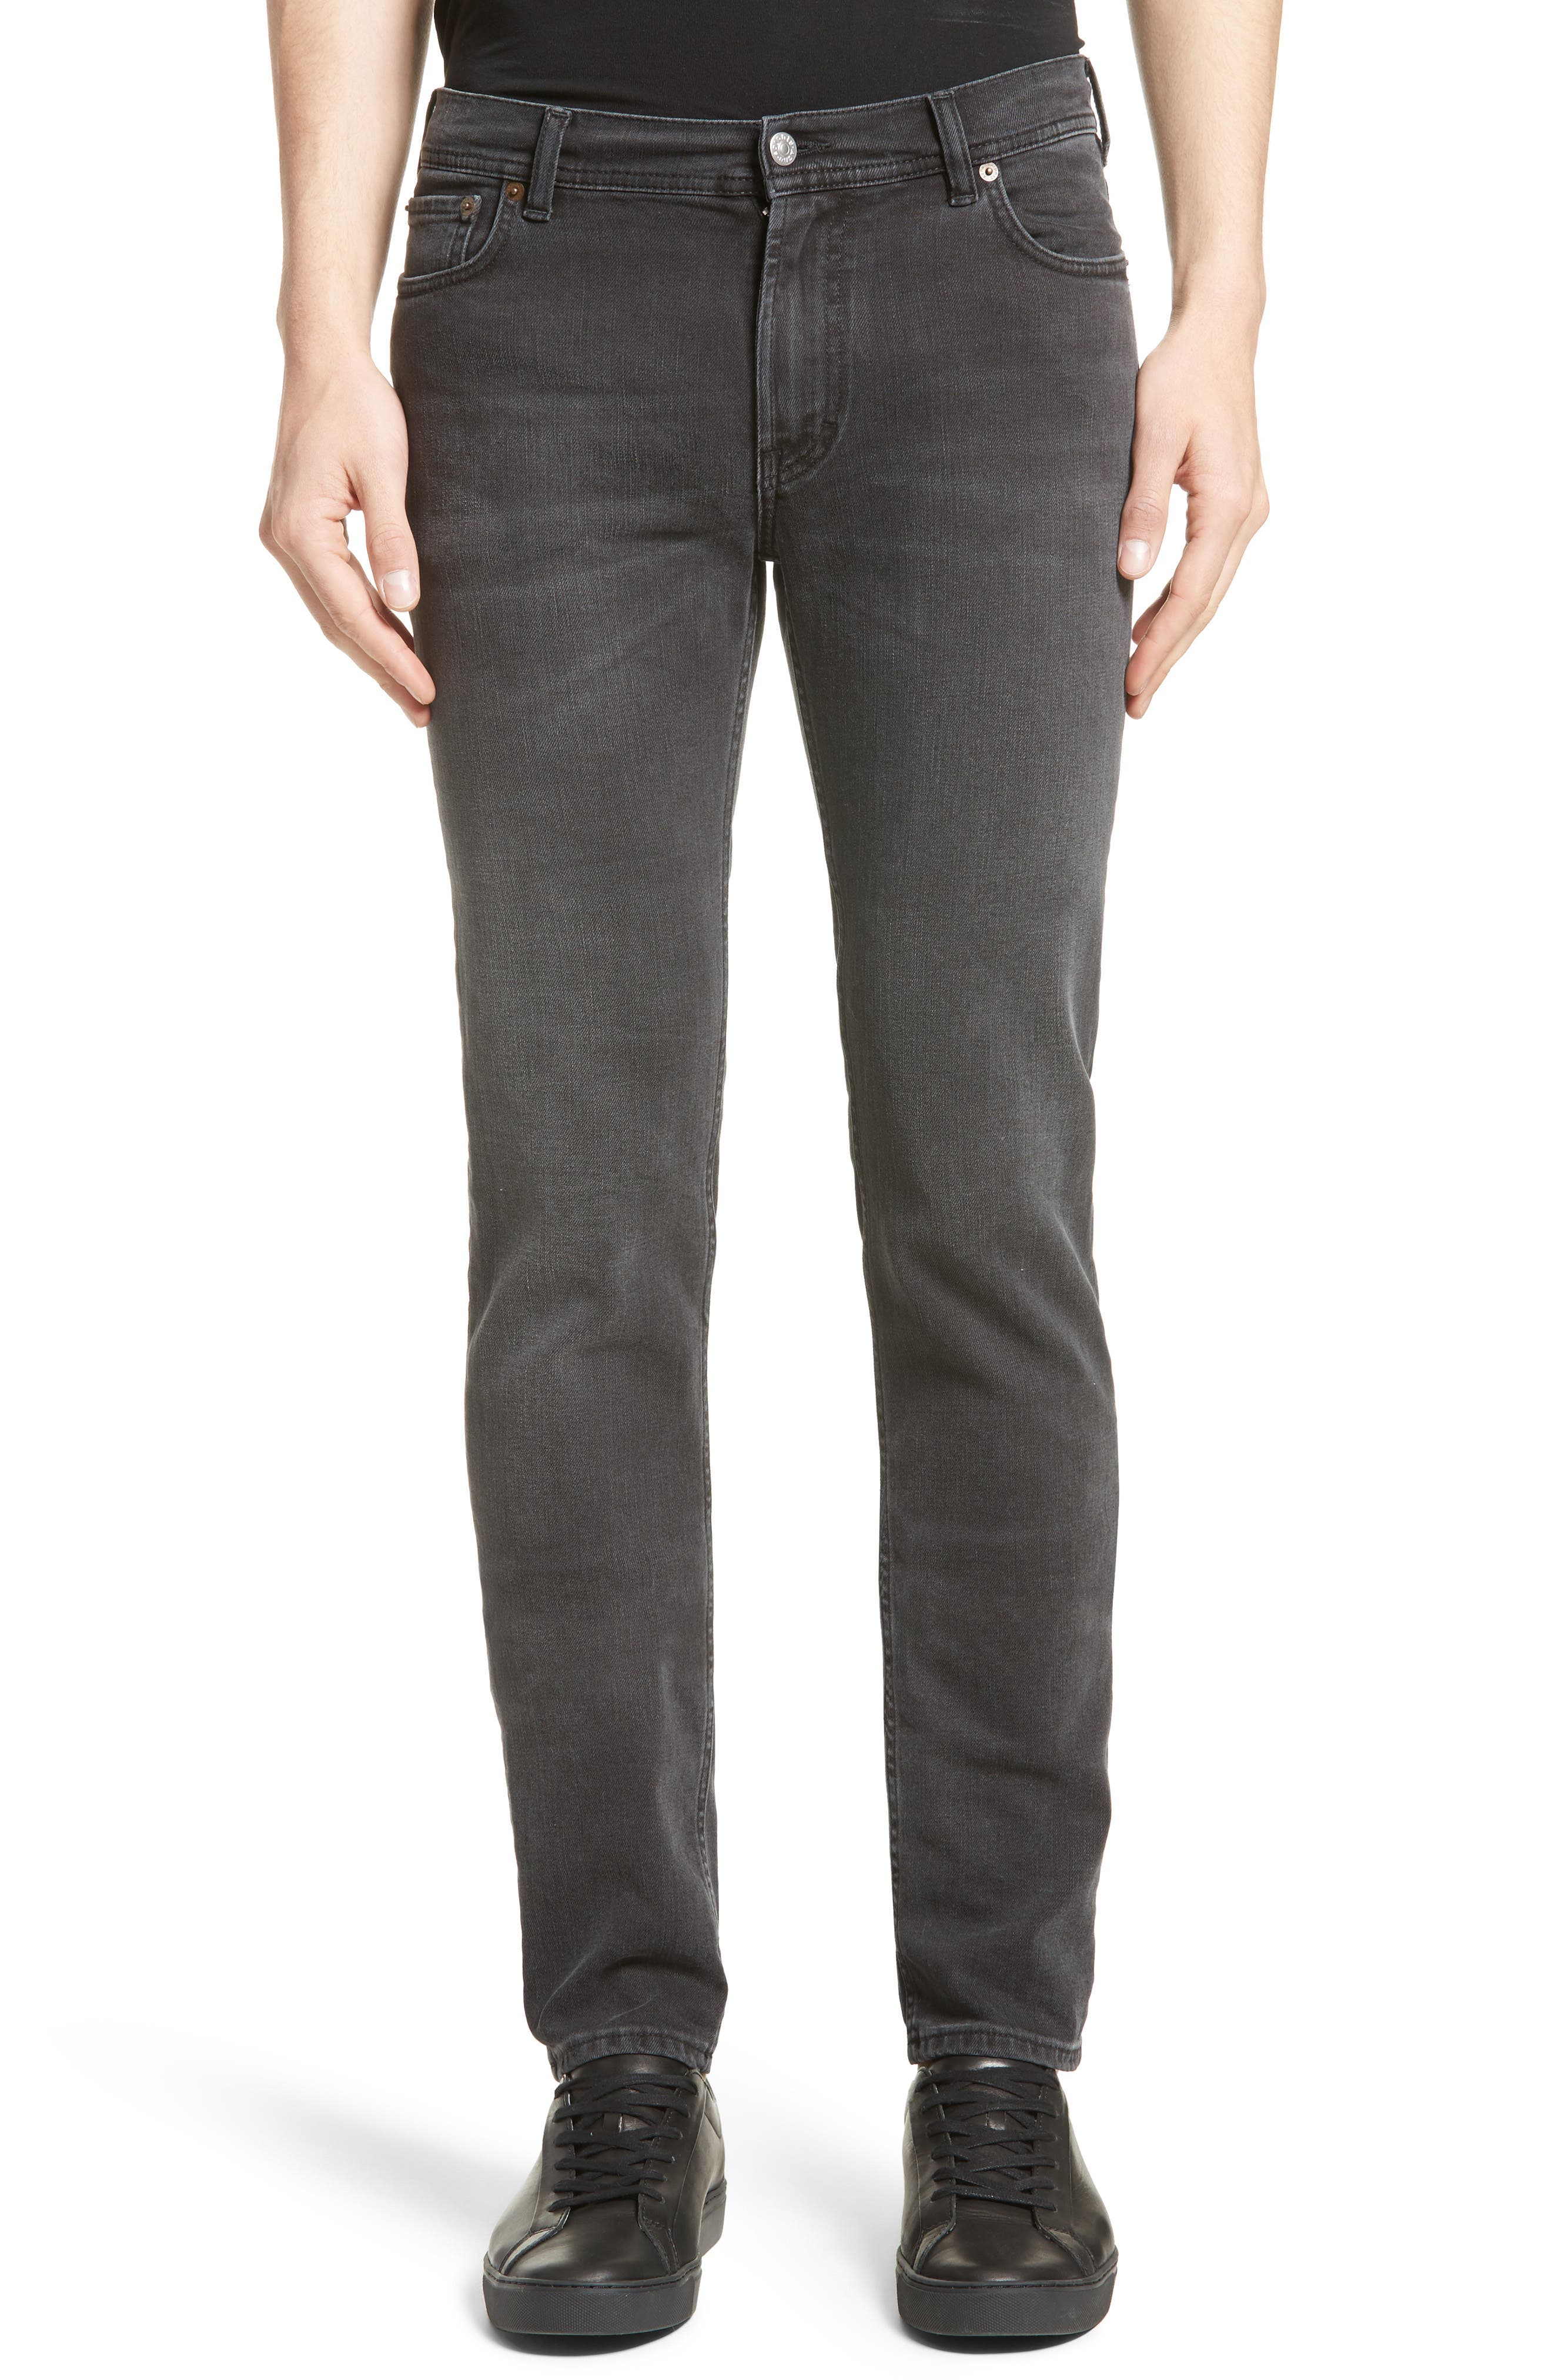 North Skinny Fit Jeans,                             Main thumbnail 1, color,                             USED BLACK